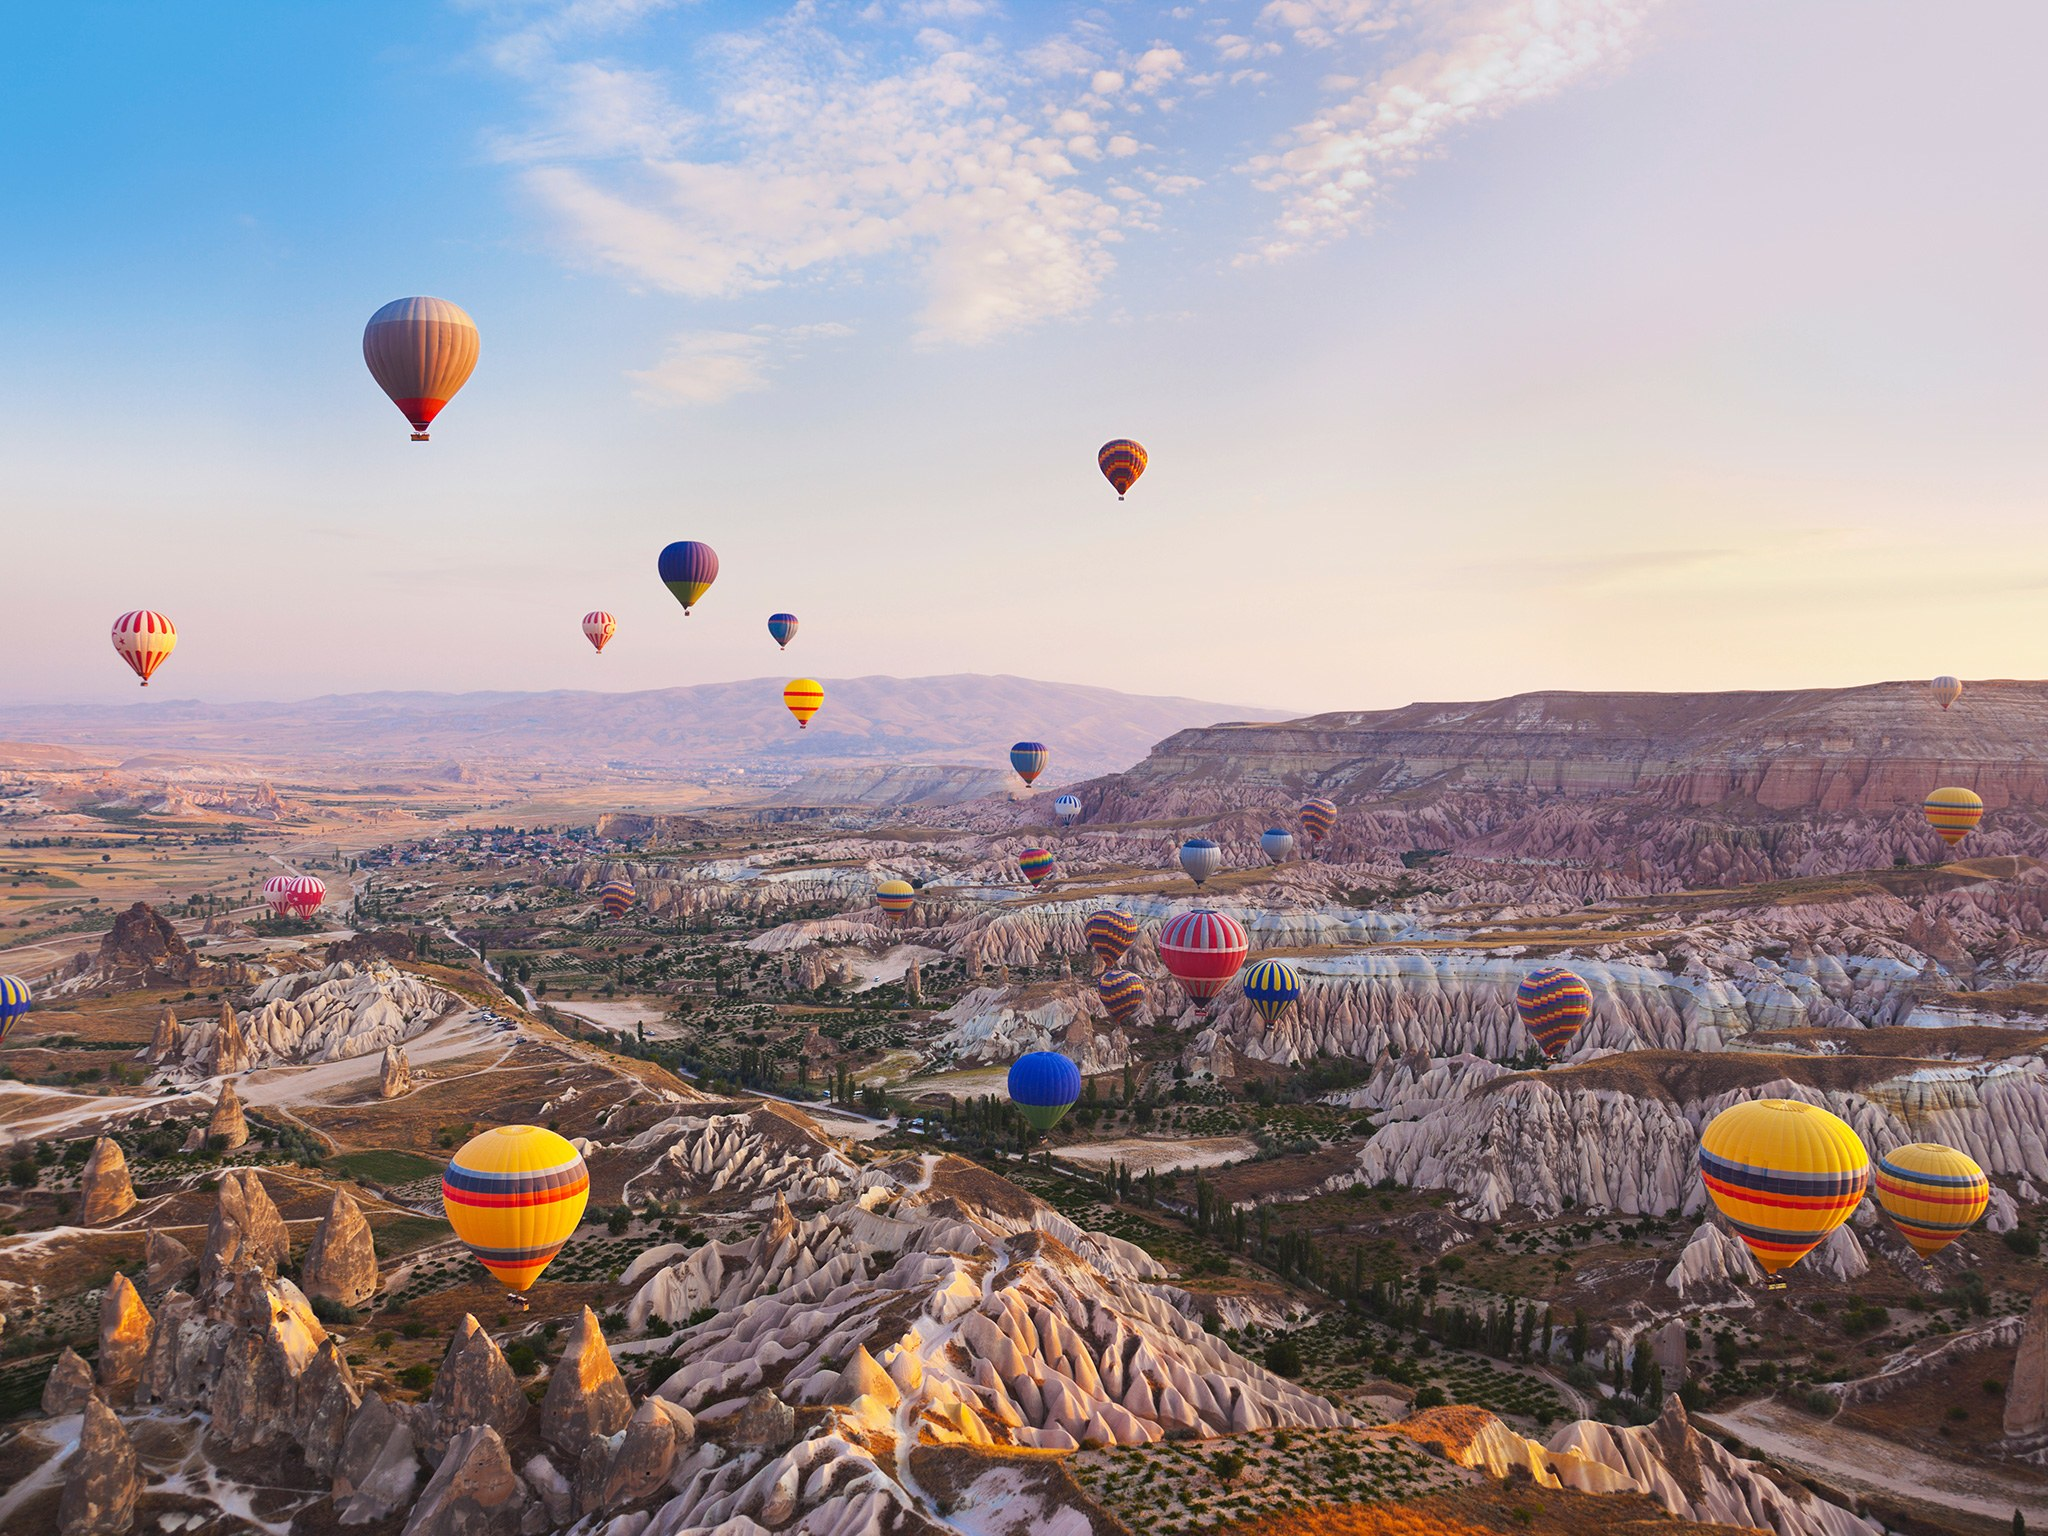 cappadocia-turkey-hot-air-balloons-cr-getty